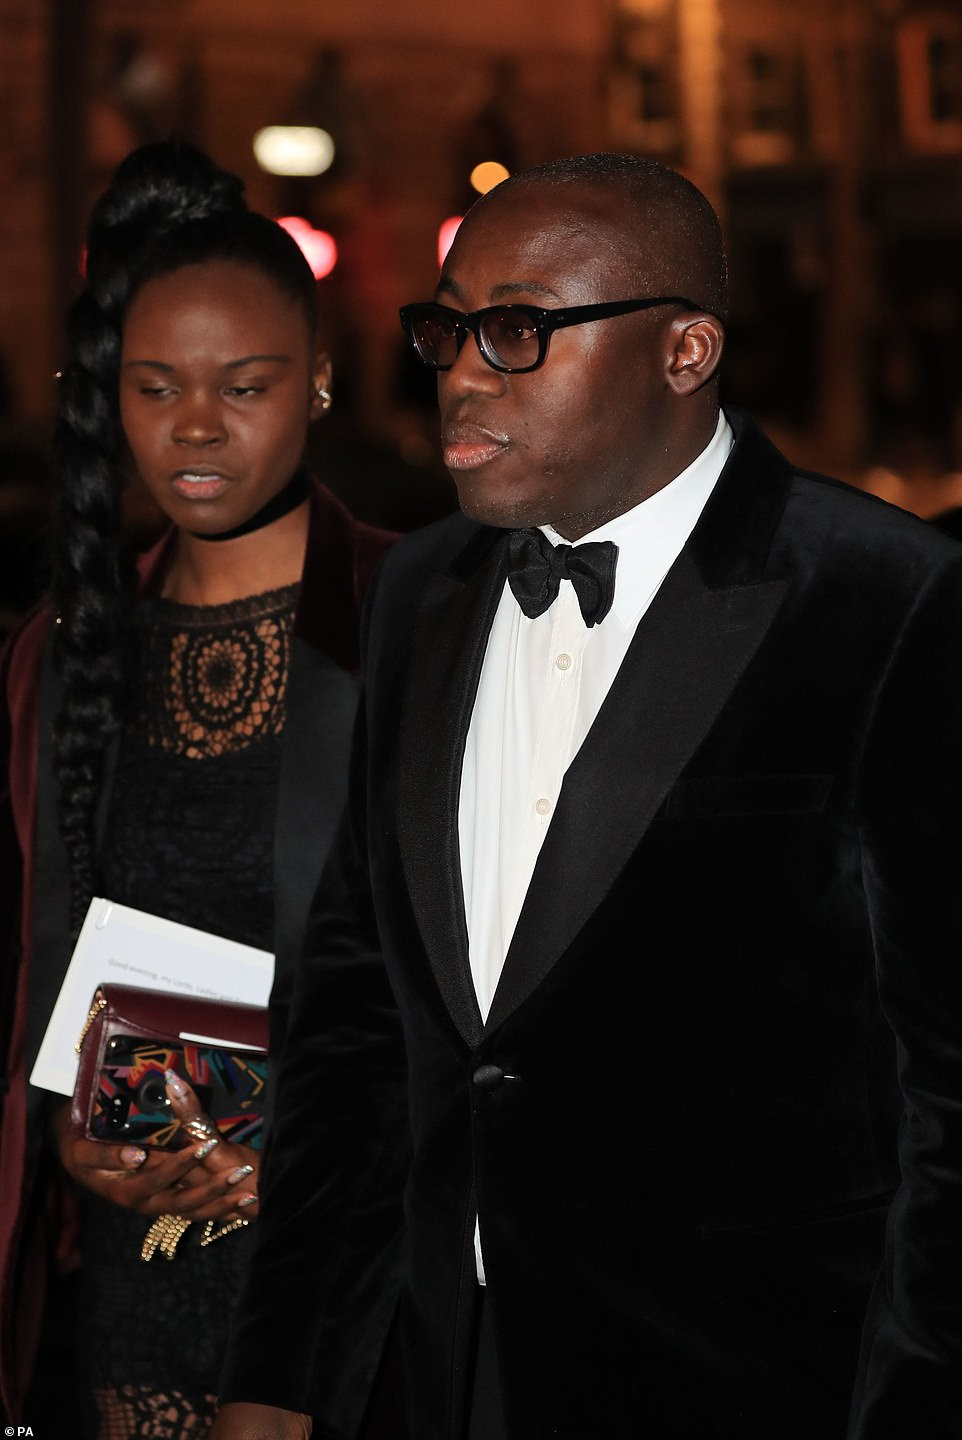 British Vogue editor Edward Enninful arrives for the 2019 Portrait Gala at the National Portrait Gallery in London, joining the likes of the Duchess of Cambridge and Princess Beatrice, who was there with her new boyfriend